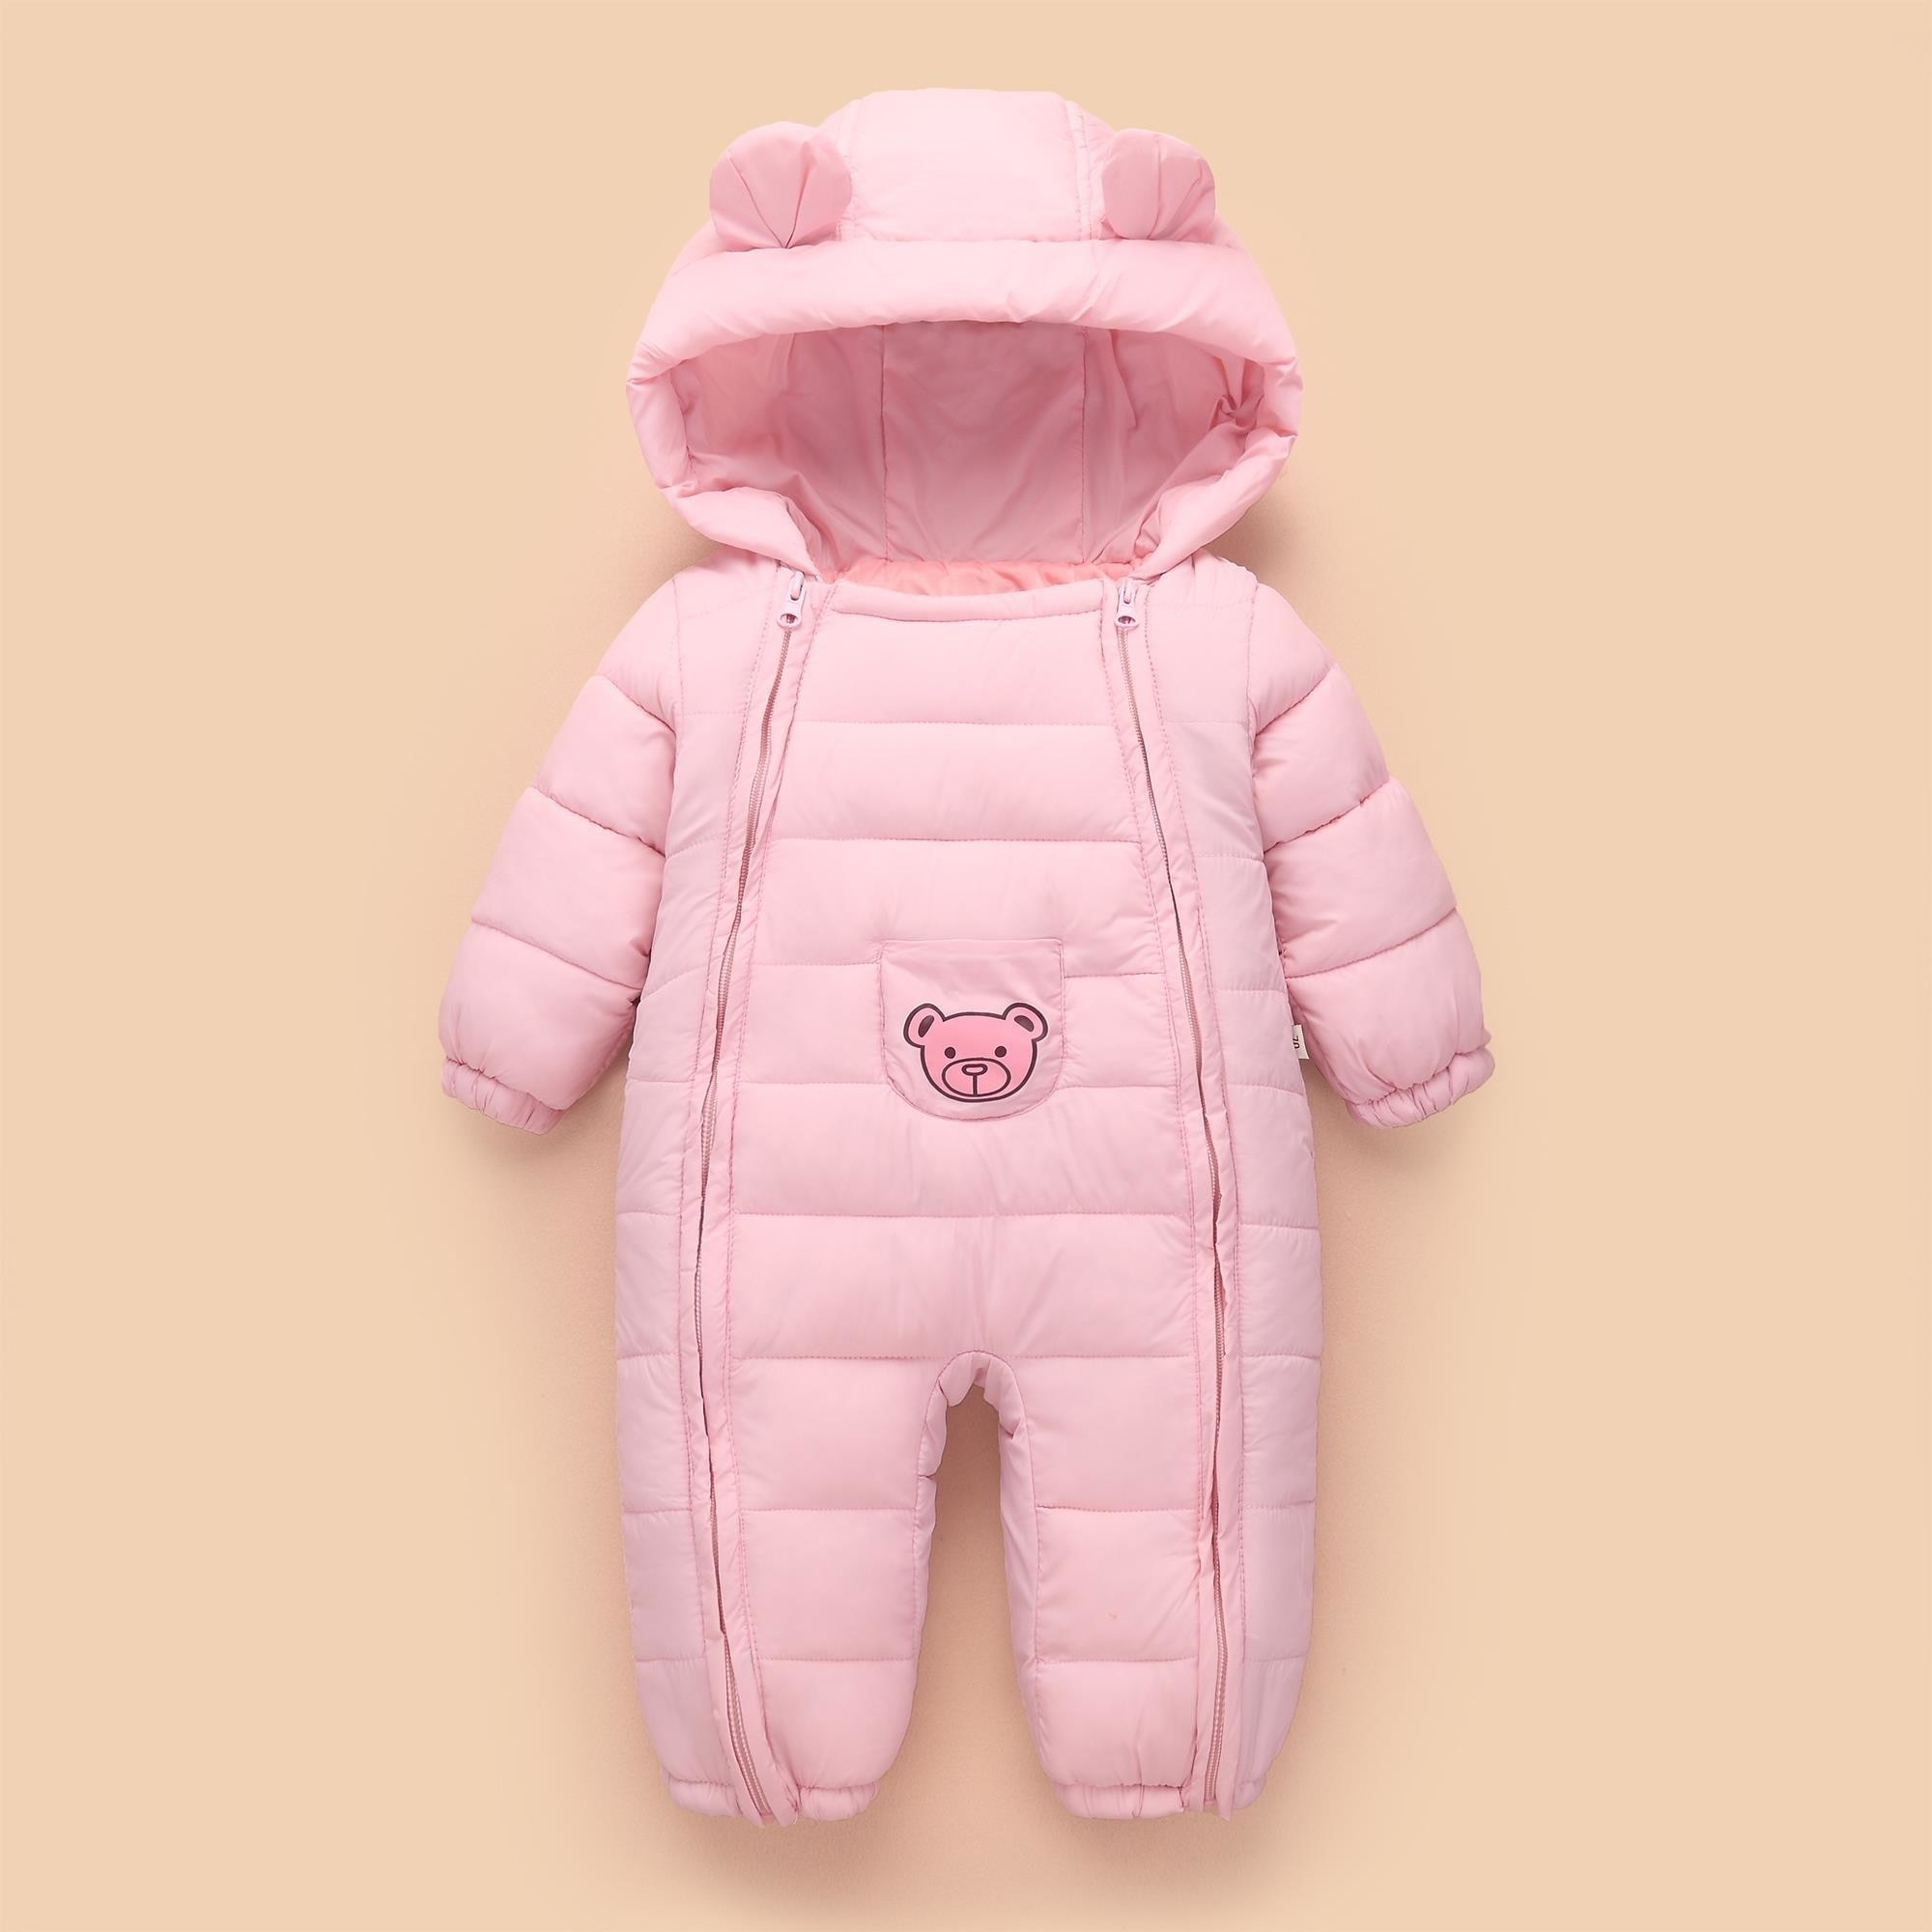 Baby Boys Jumpsuits Newborn Jumpsuits Baby Jumpsuits Cartoon Bear Ears Thicken Warm Snow Rompers